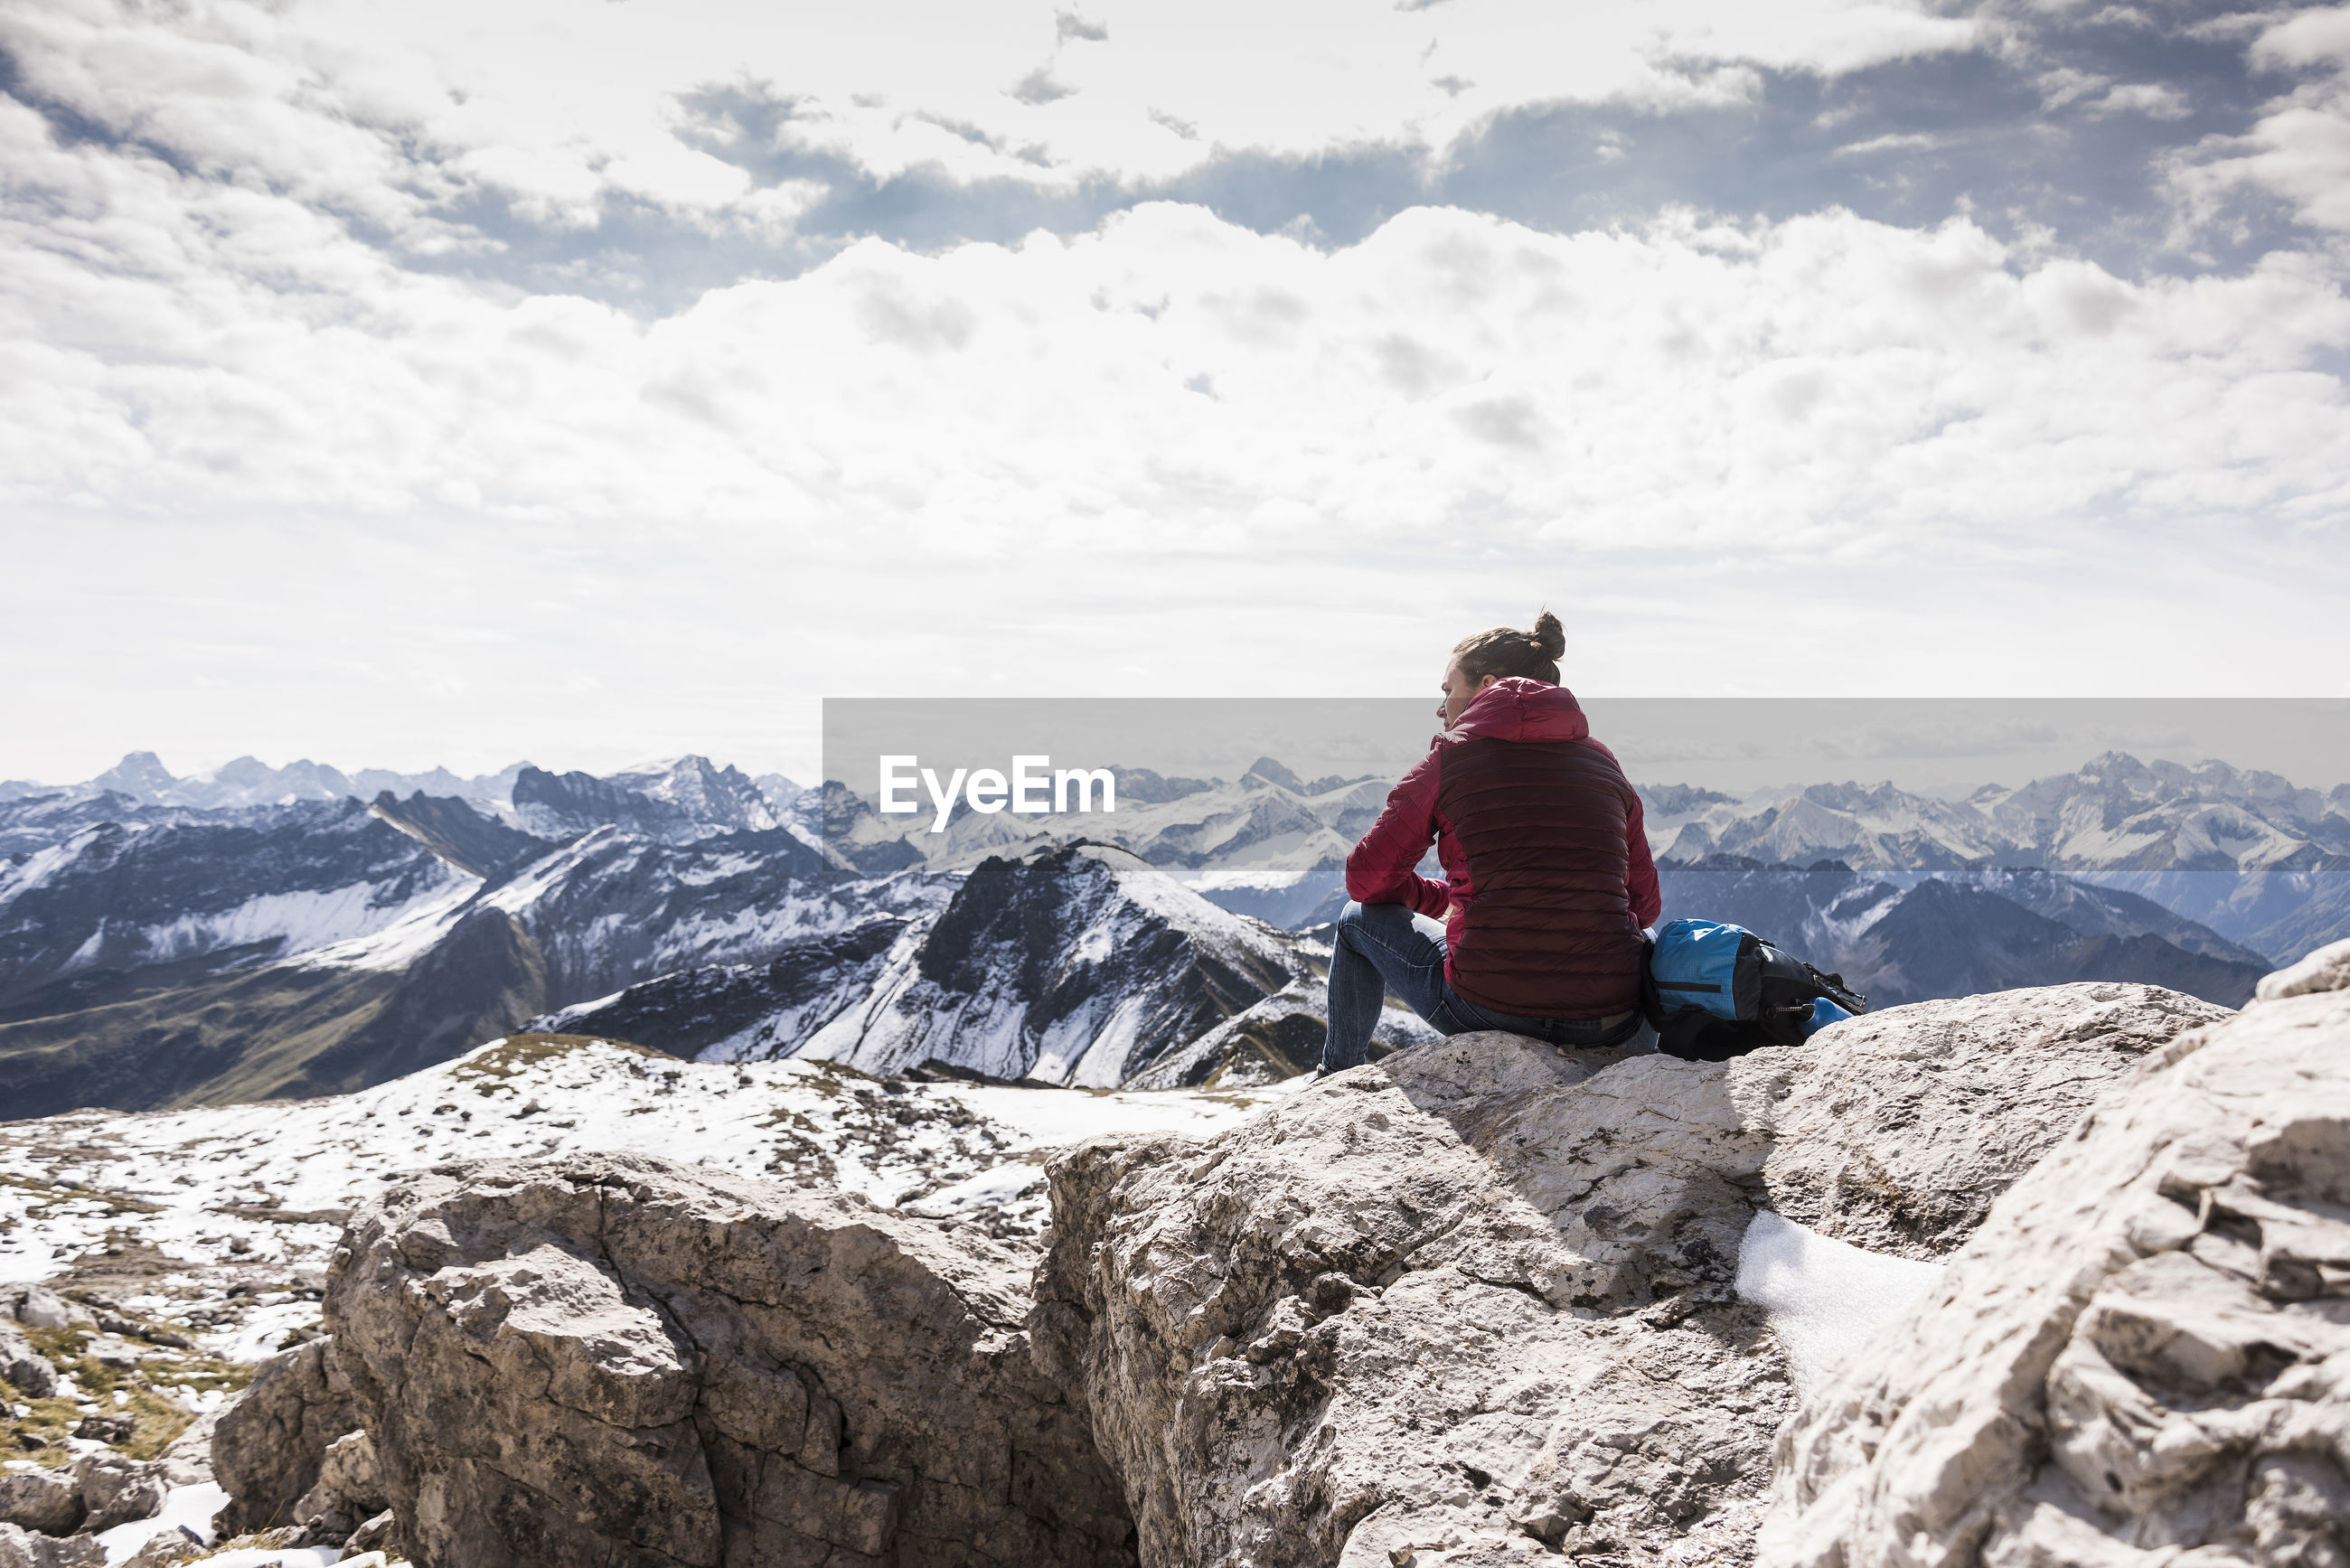 REAR VIEW OF MAN SITTING ON ROCK AGAINST SNOWCAPPED MOUNTAINS